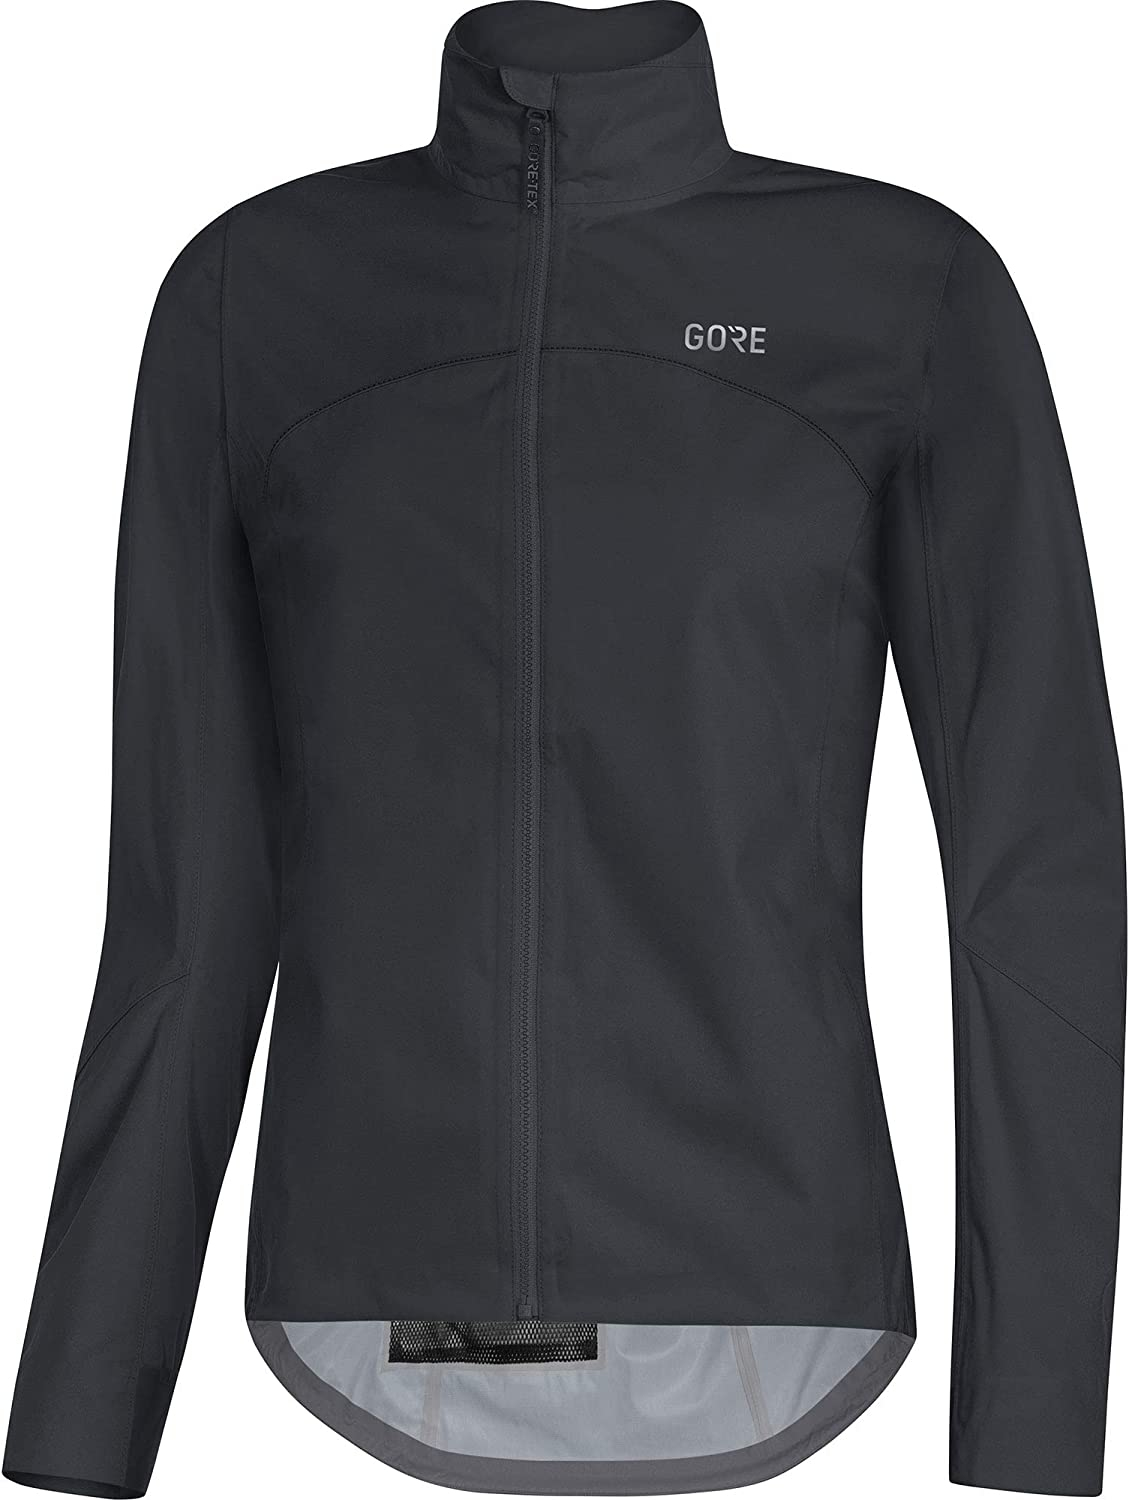 GORE WEAR C5 Ladies Cycling Jacket Gore-TEX Active : Clothing